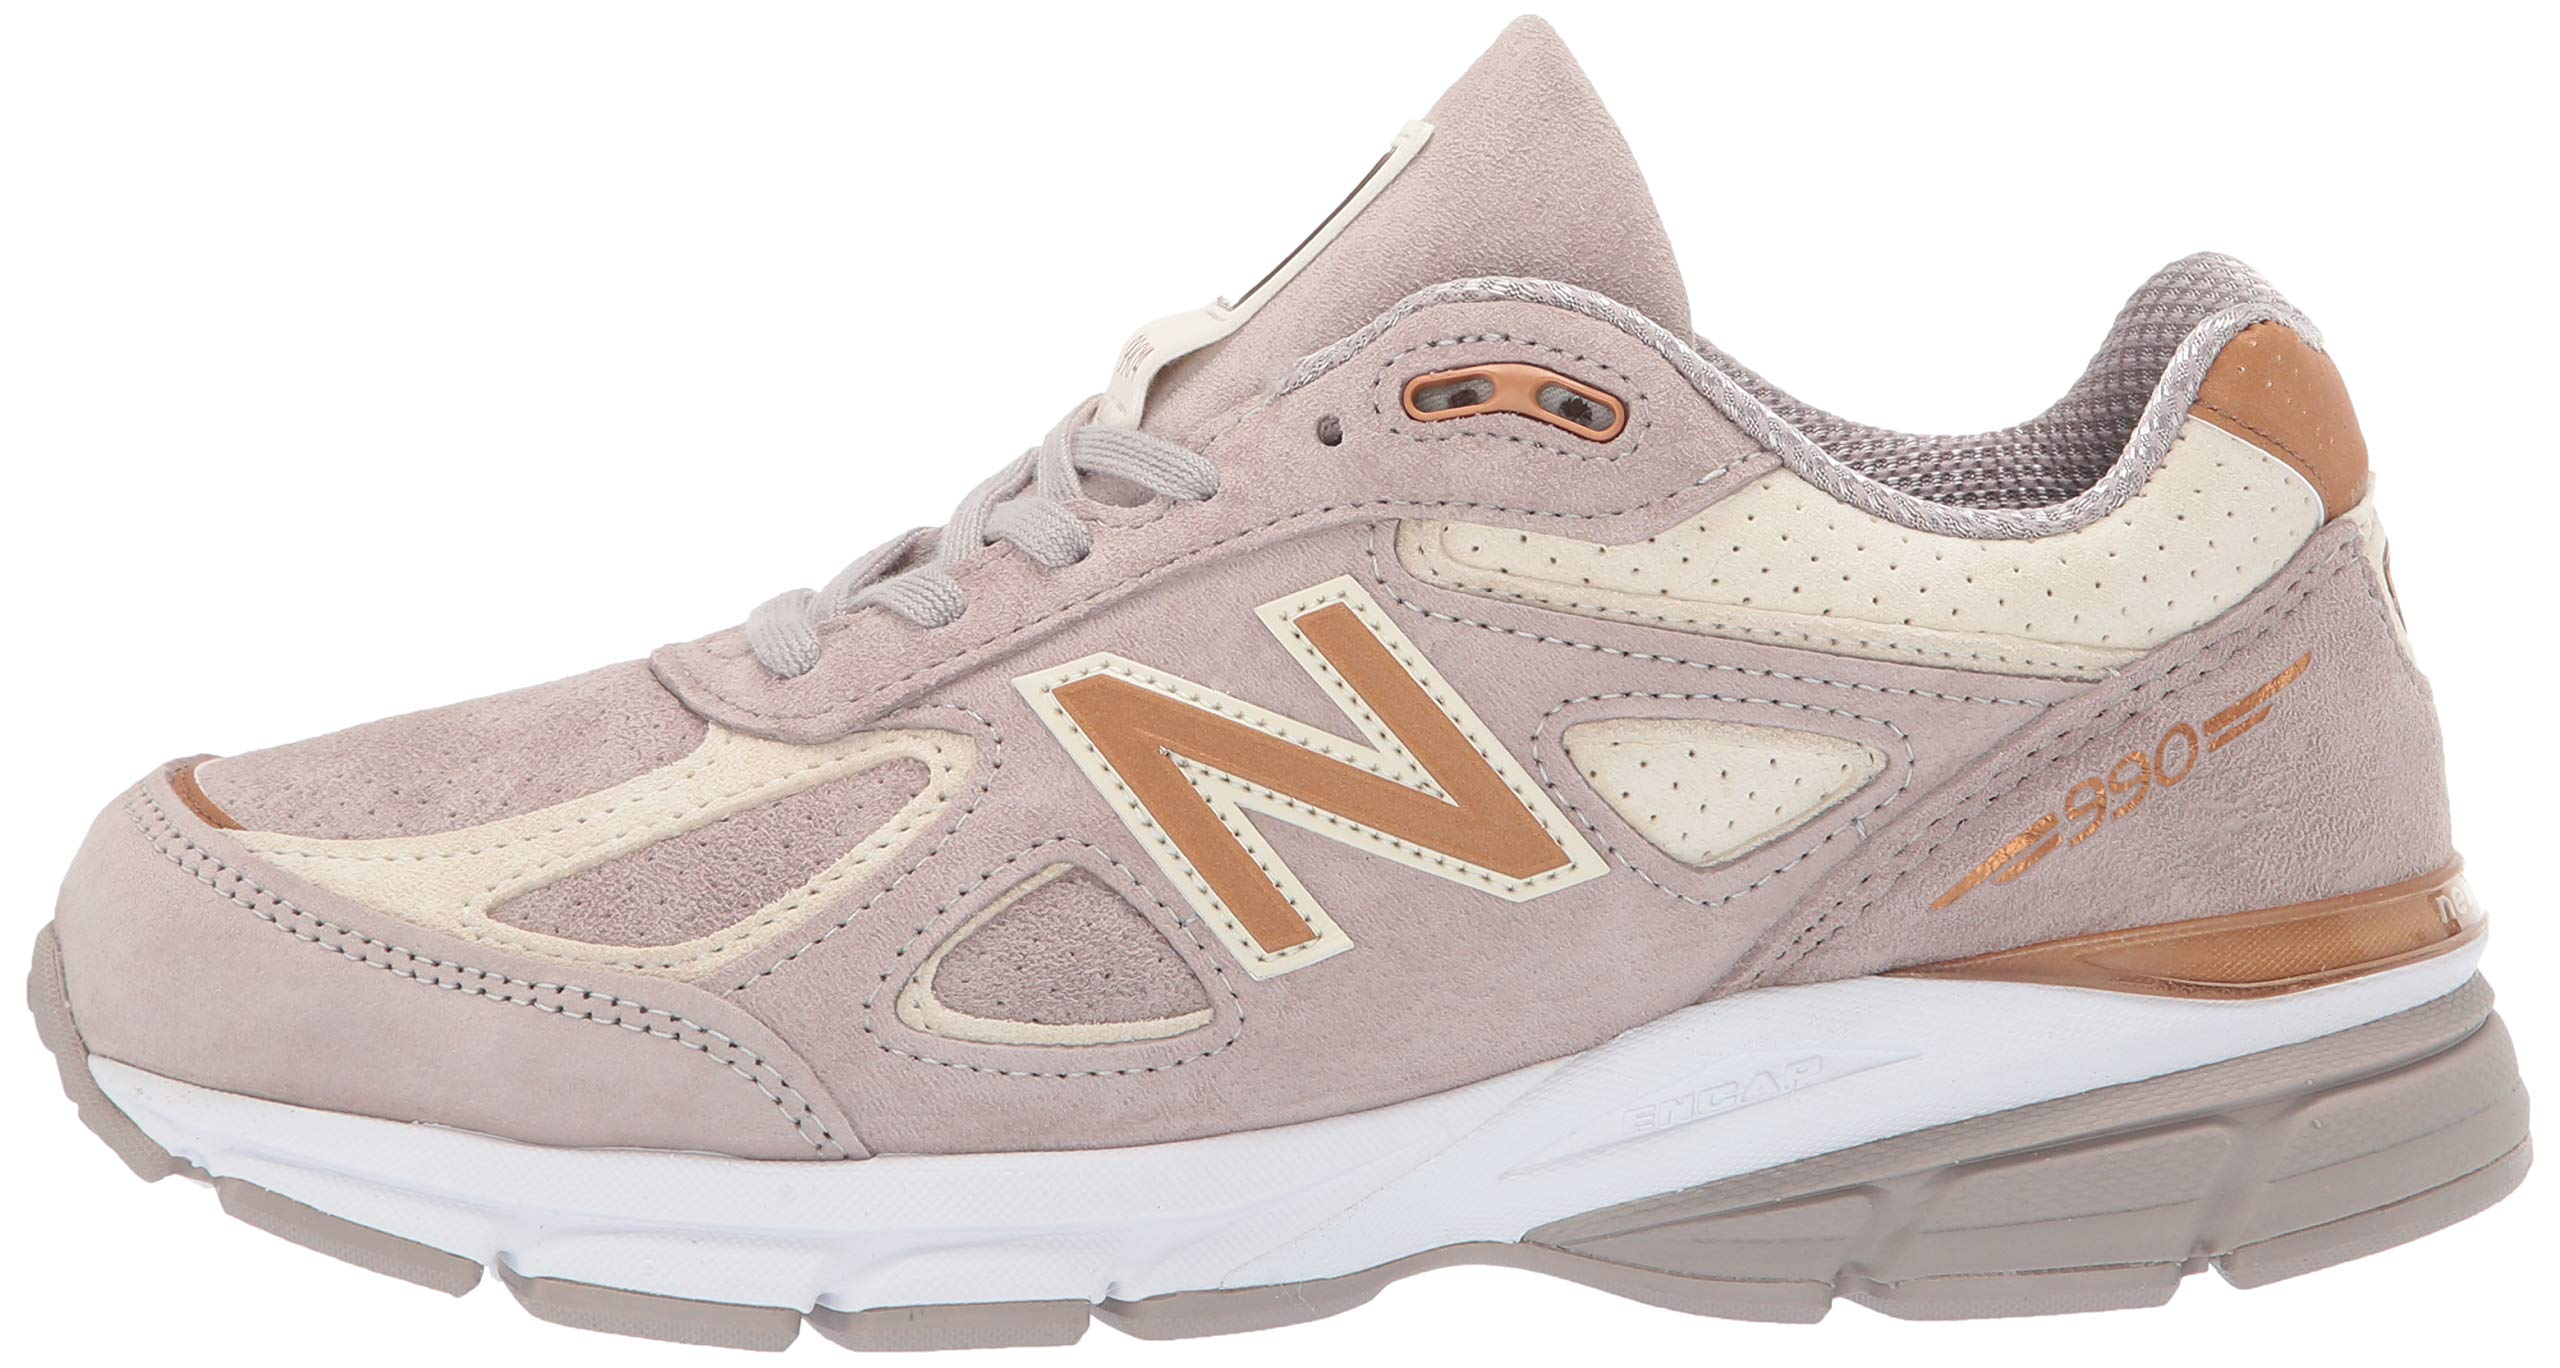 favorable price clearance best sale New Balance Women's W990v4 Running Shoes